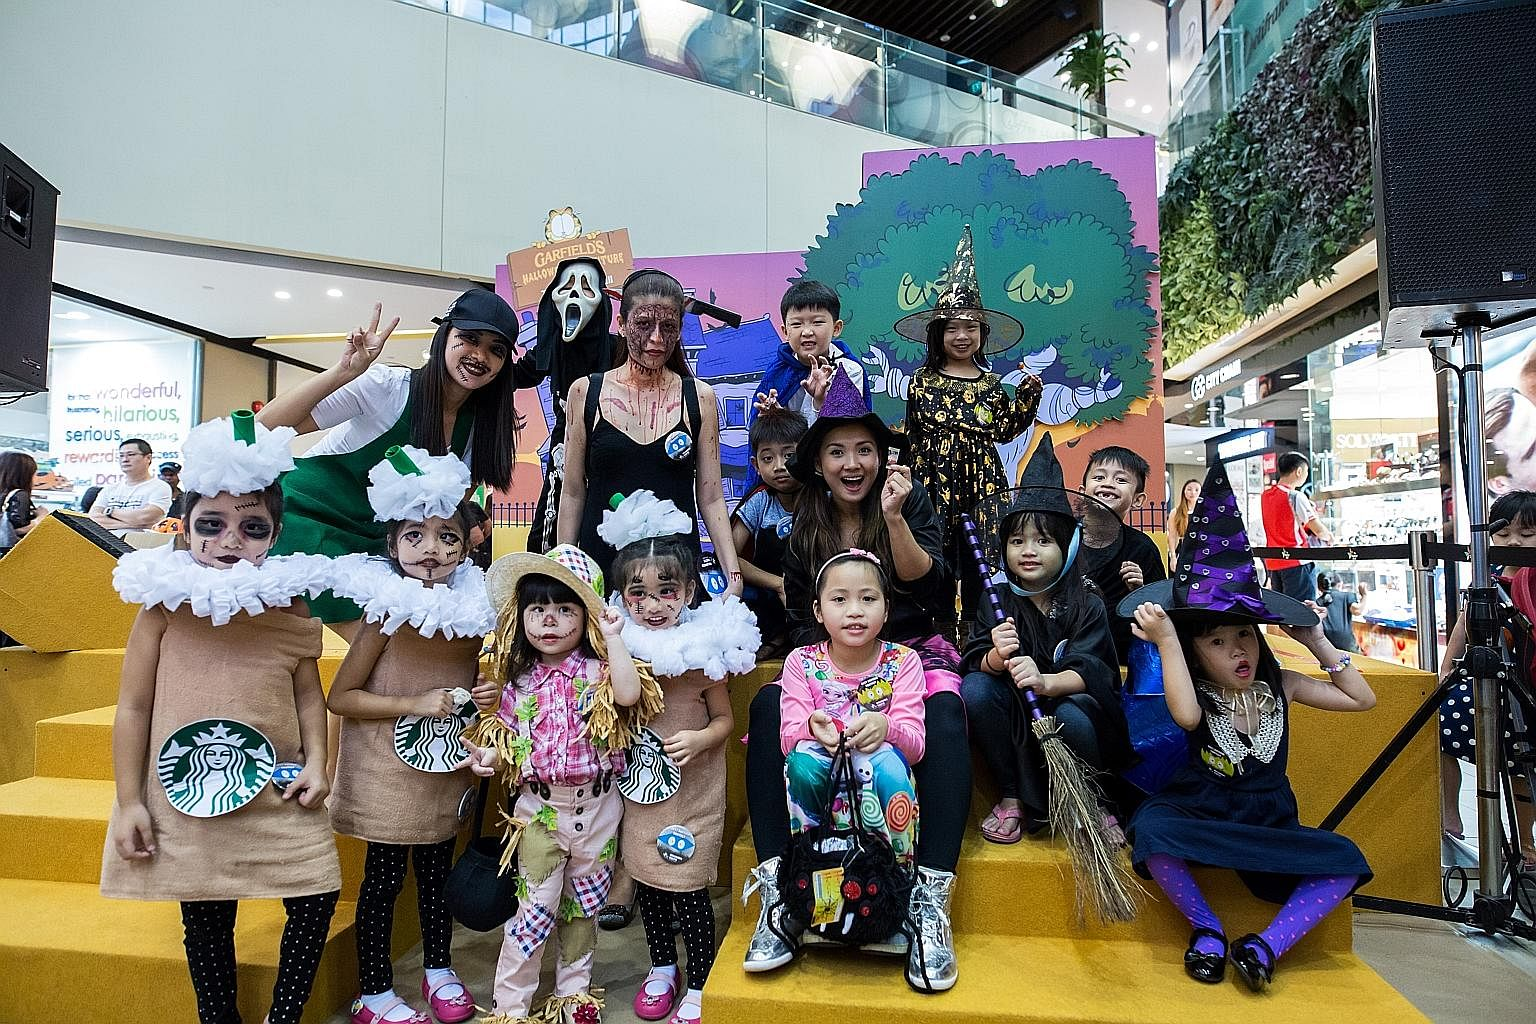 The finalists of last year's Halloween costume event at The Seletar Mall. Participants of last year's Singapore Halloween Festival run.